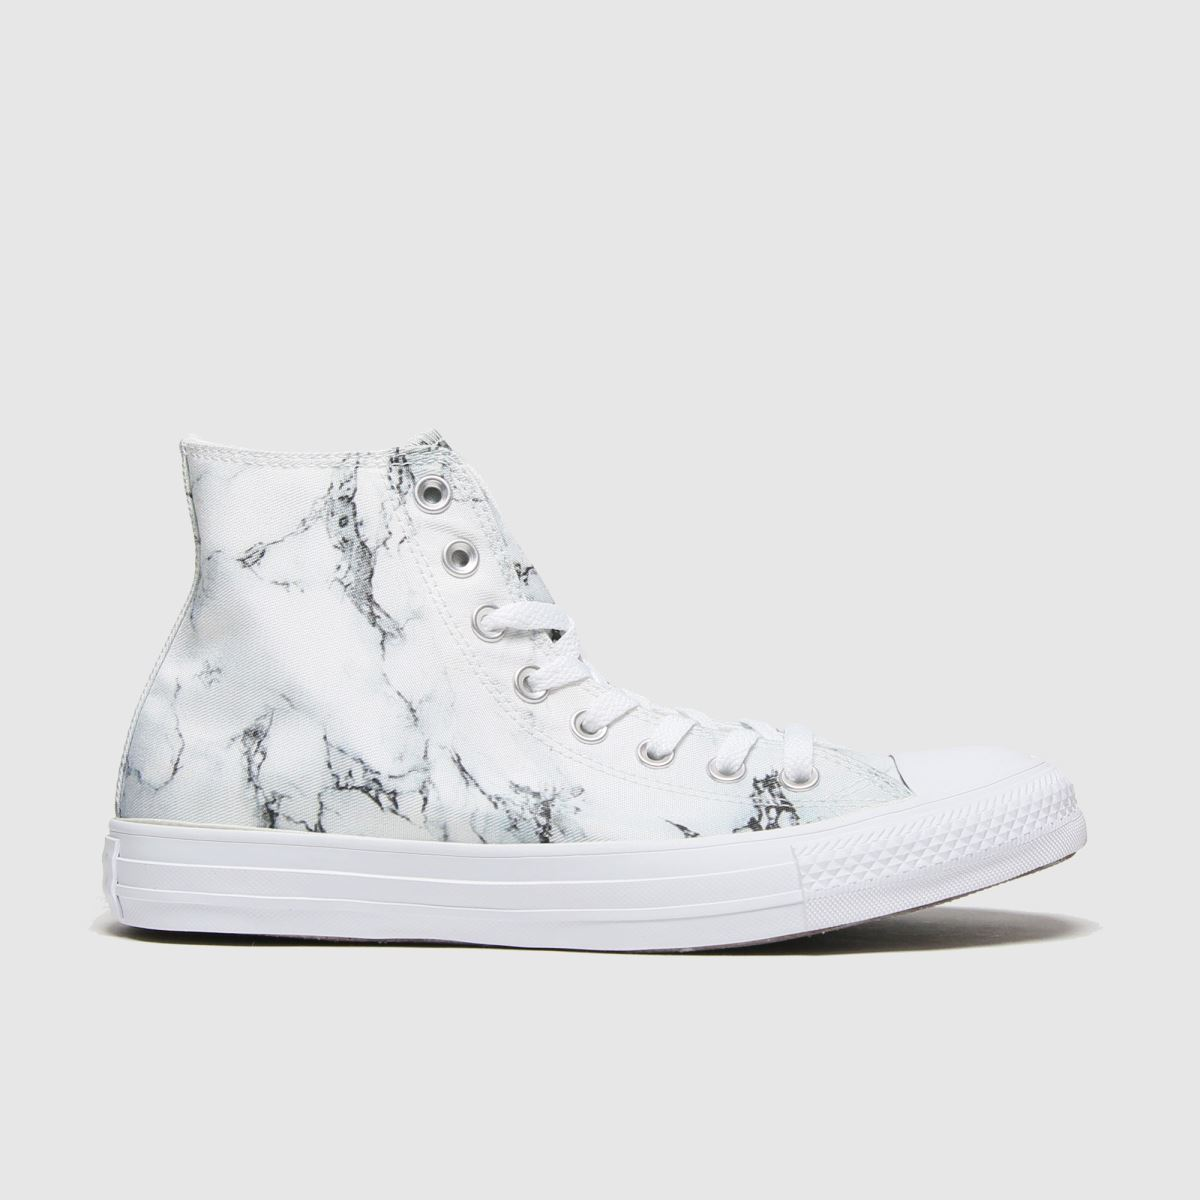 Converse White & Black Marble Hi Trainers